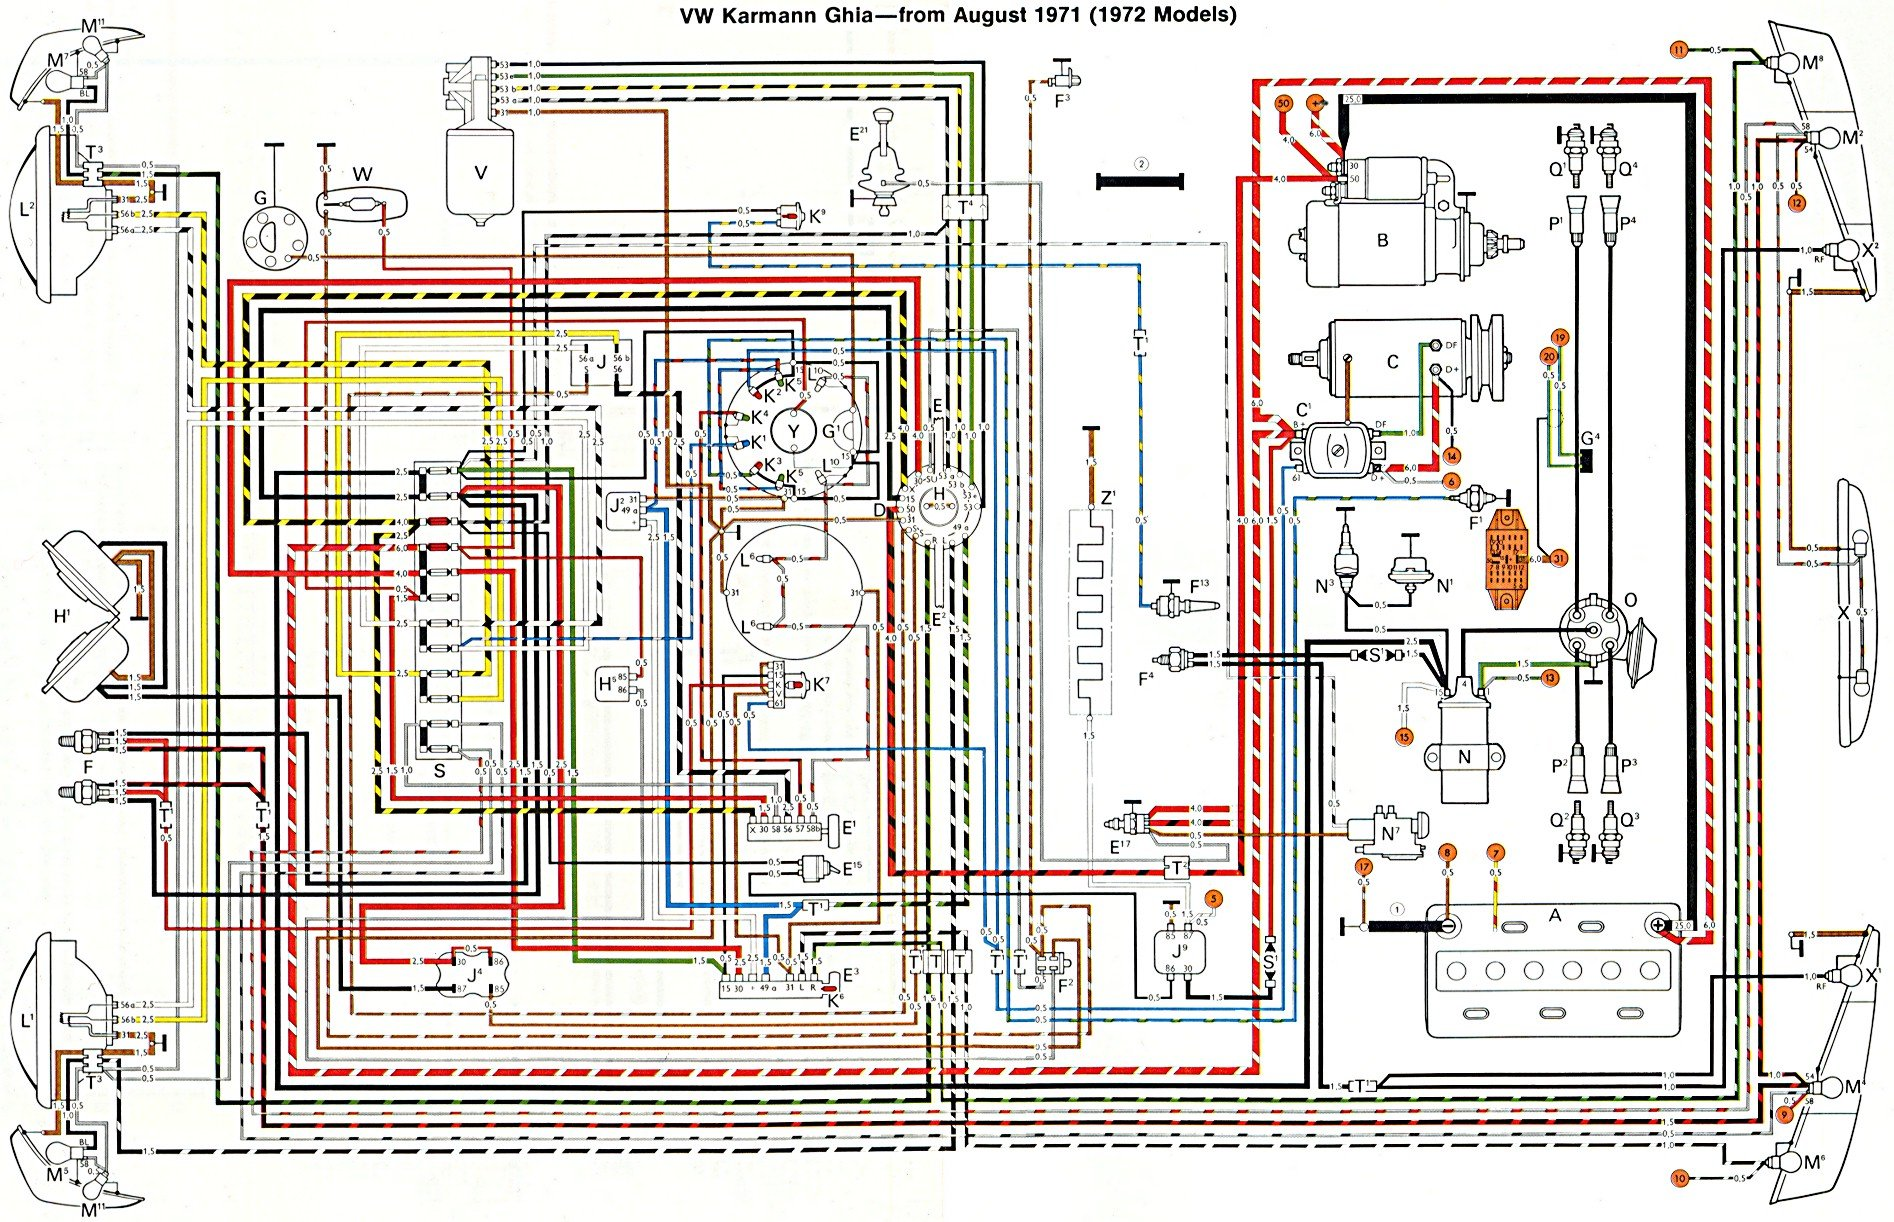 Cc Vw Engine Diagram Vw Beetle Engine Diagram Starter Vw Download Free Image besides Ghia Fuses Dpi further Install Fuel Filter Fuel Hose together with Regulatordecal besides Ghia Key. on 1971 vw beetle wiring diagram